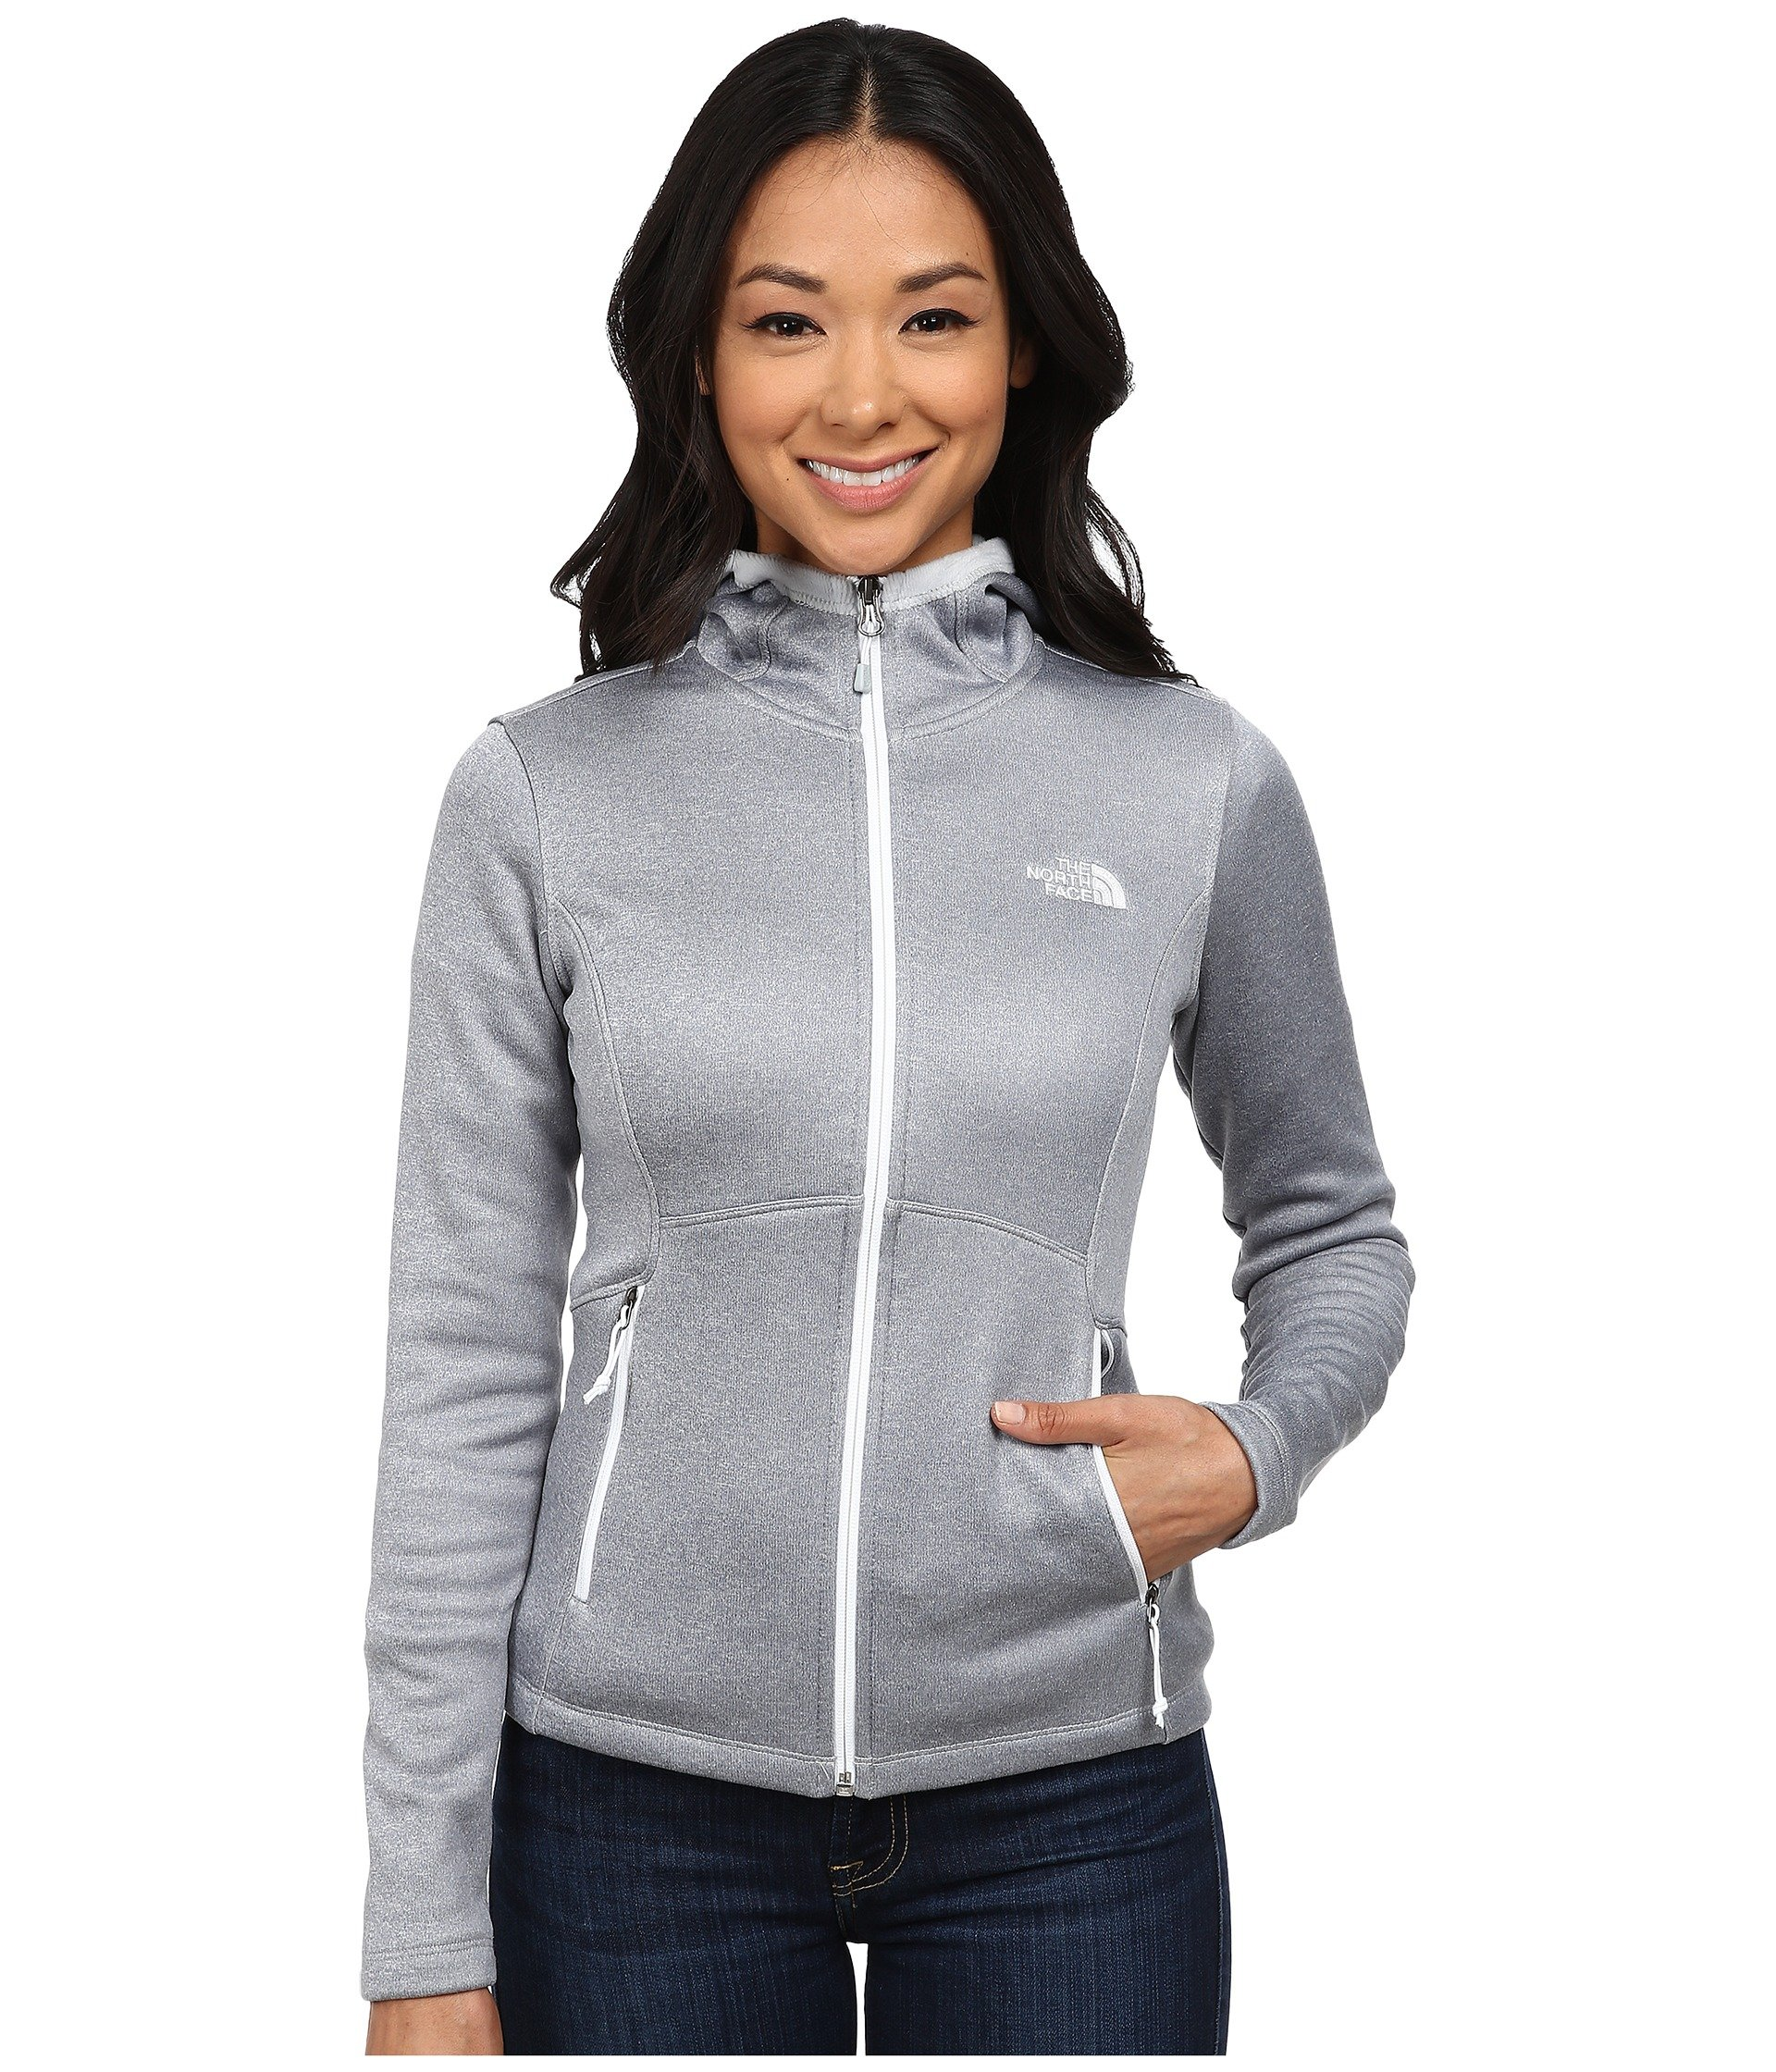 North face women's agave jacket black